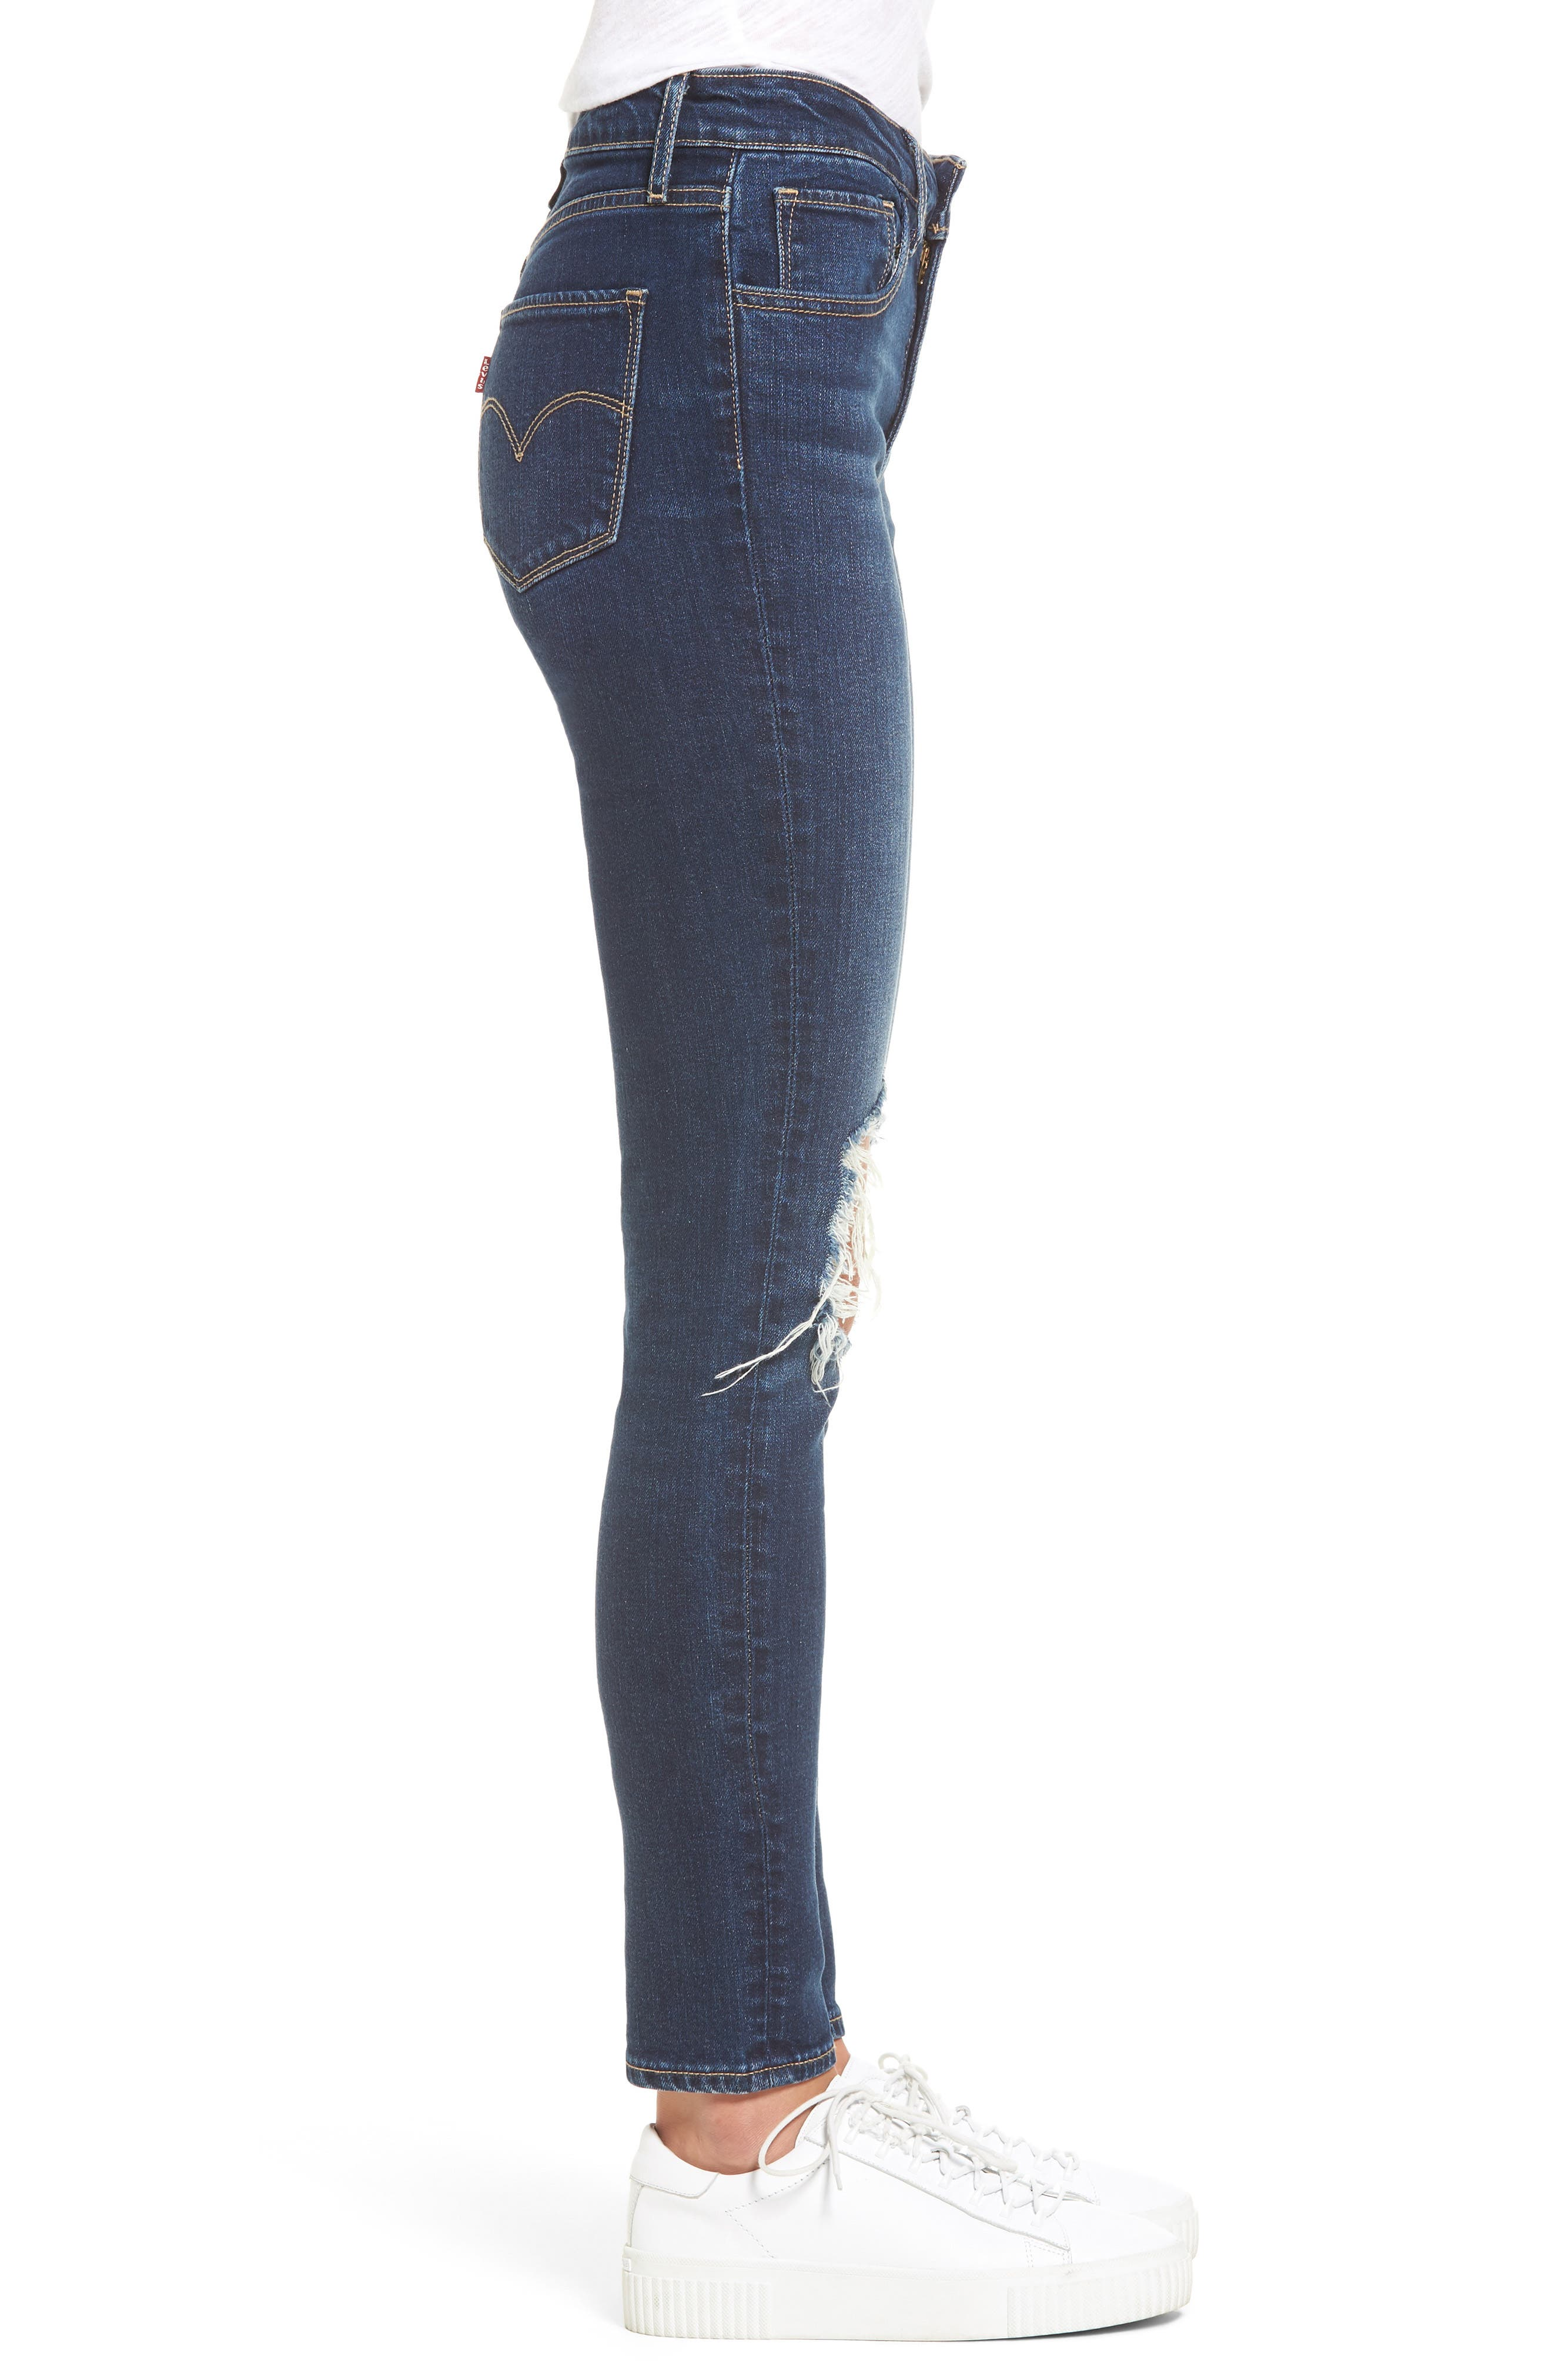 721 Ripped High Waist Skinny Jeans,                             Alternate thumbnail 3, color,                             420